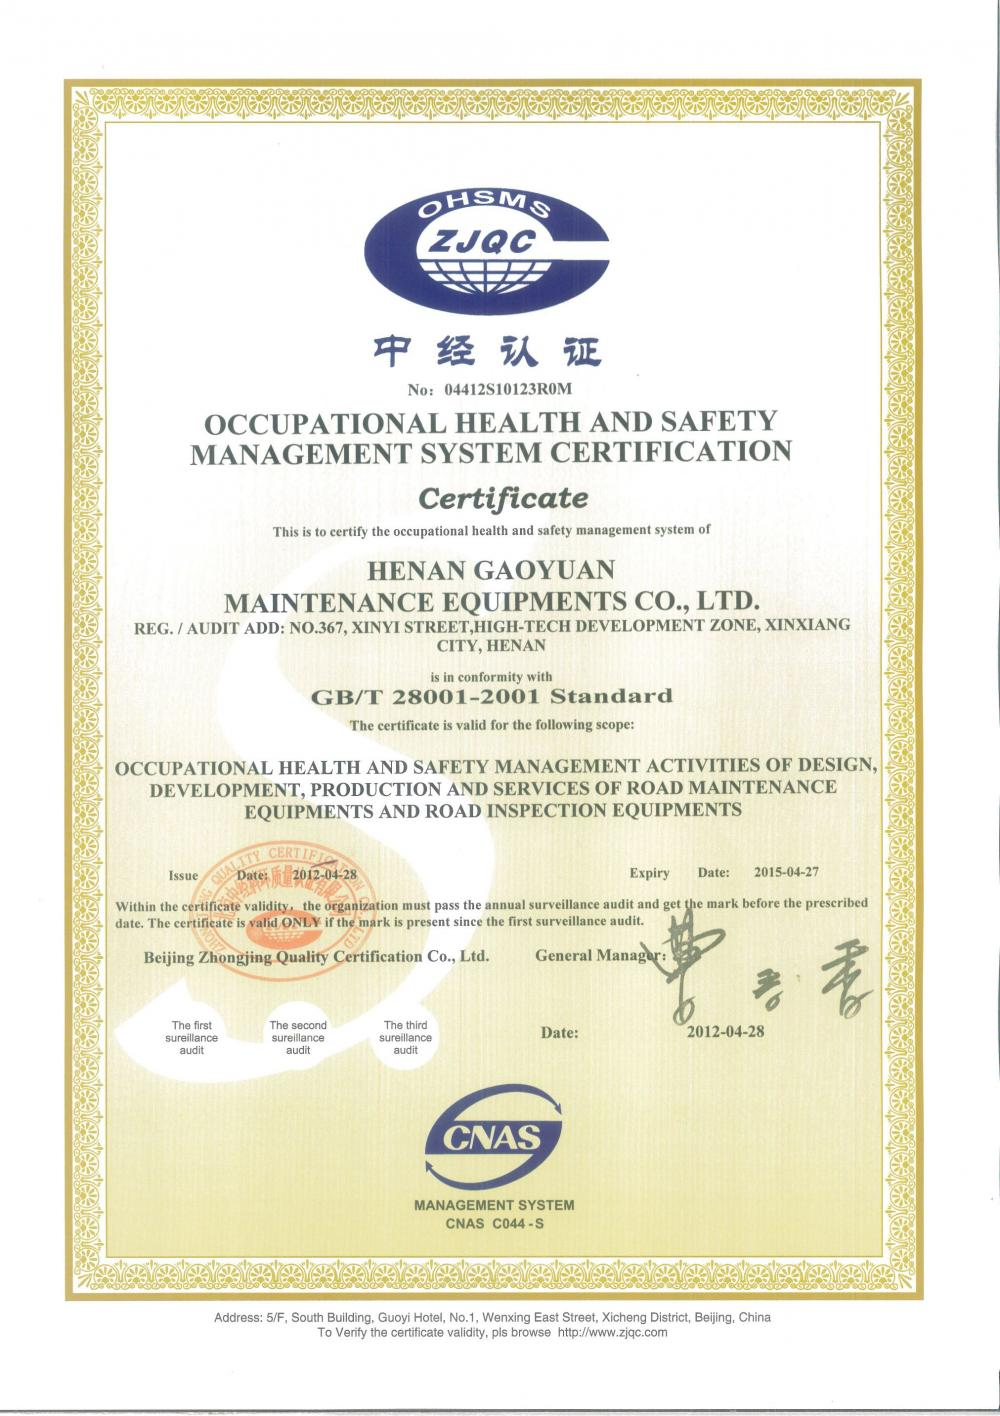 OCCUPATIONAL HEALTH and SAFETY SYSTEM CERTIFICATION